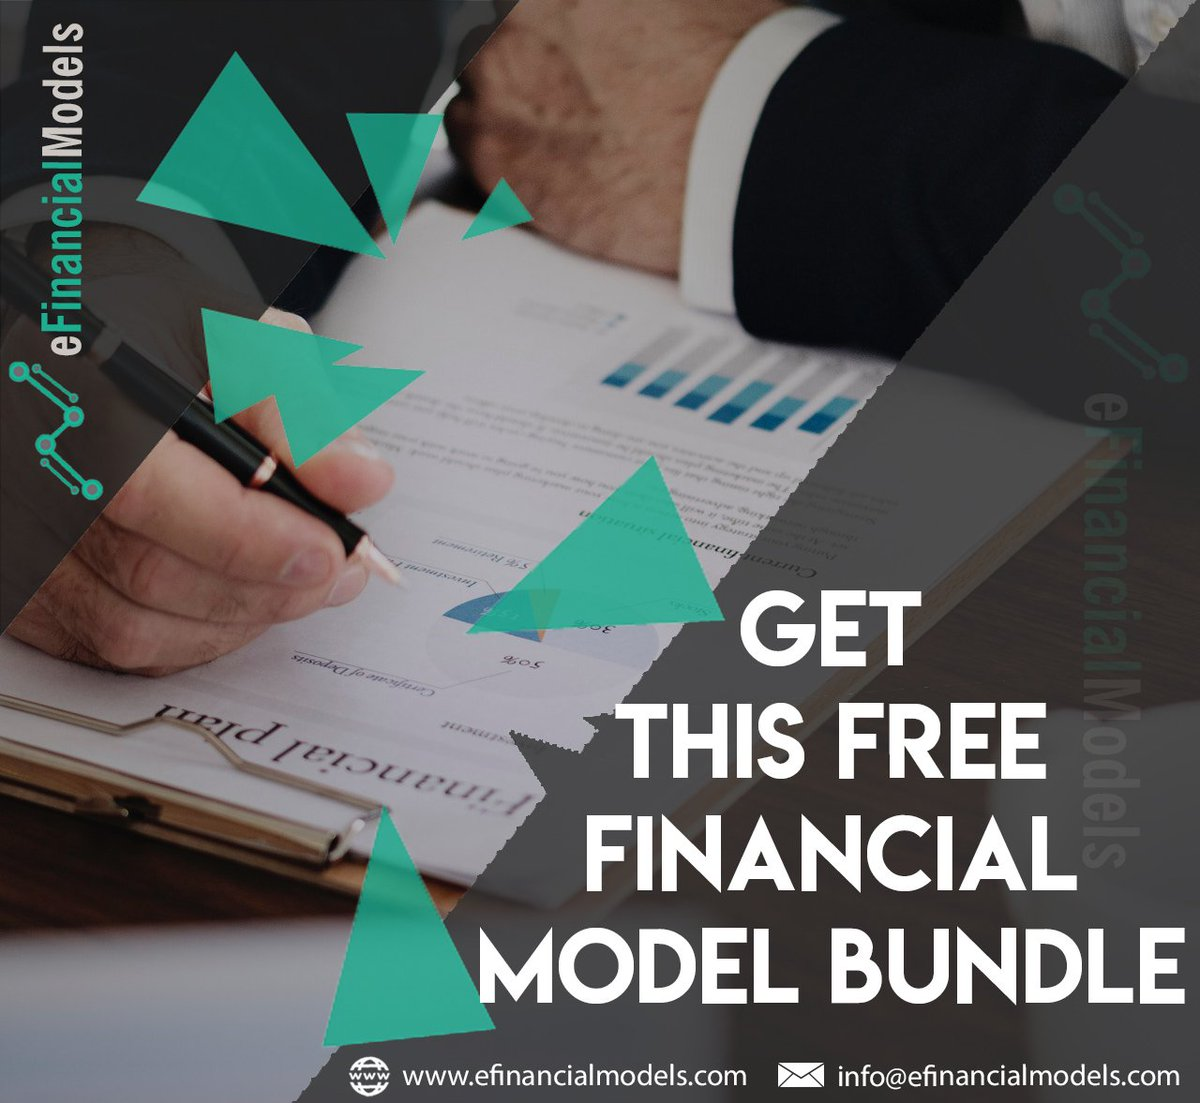 Get a FREE copy of this General Financial Model Templates bundle now! https://drumup.io/s/QFKVVV      #FREE #forFree #freetemplate #freedownload #holidaysale #sale #templatebundle #bundle #financialmodel #template #like #share #follow #eFinancialModels